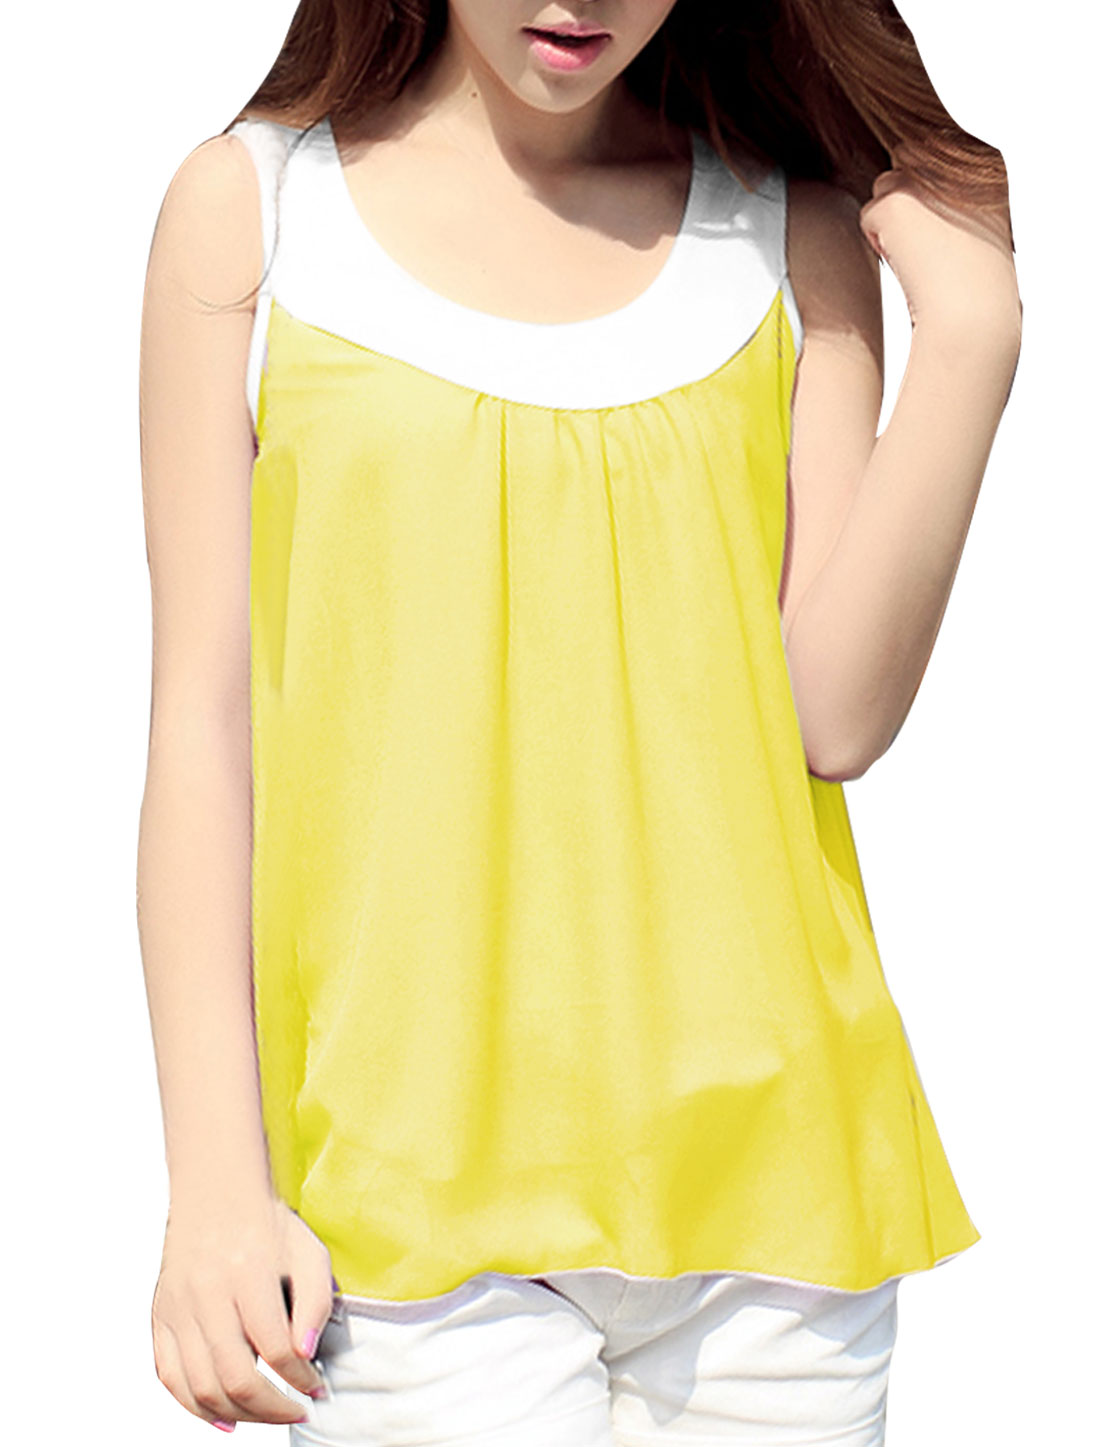 Stylish Light Yellow Scoop Neck Flare Hem Design Tank Top for Lady S